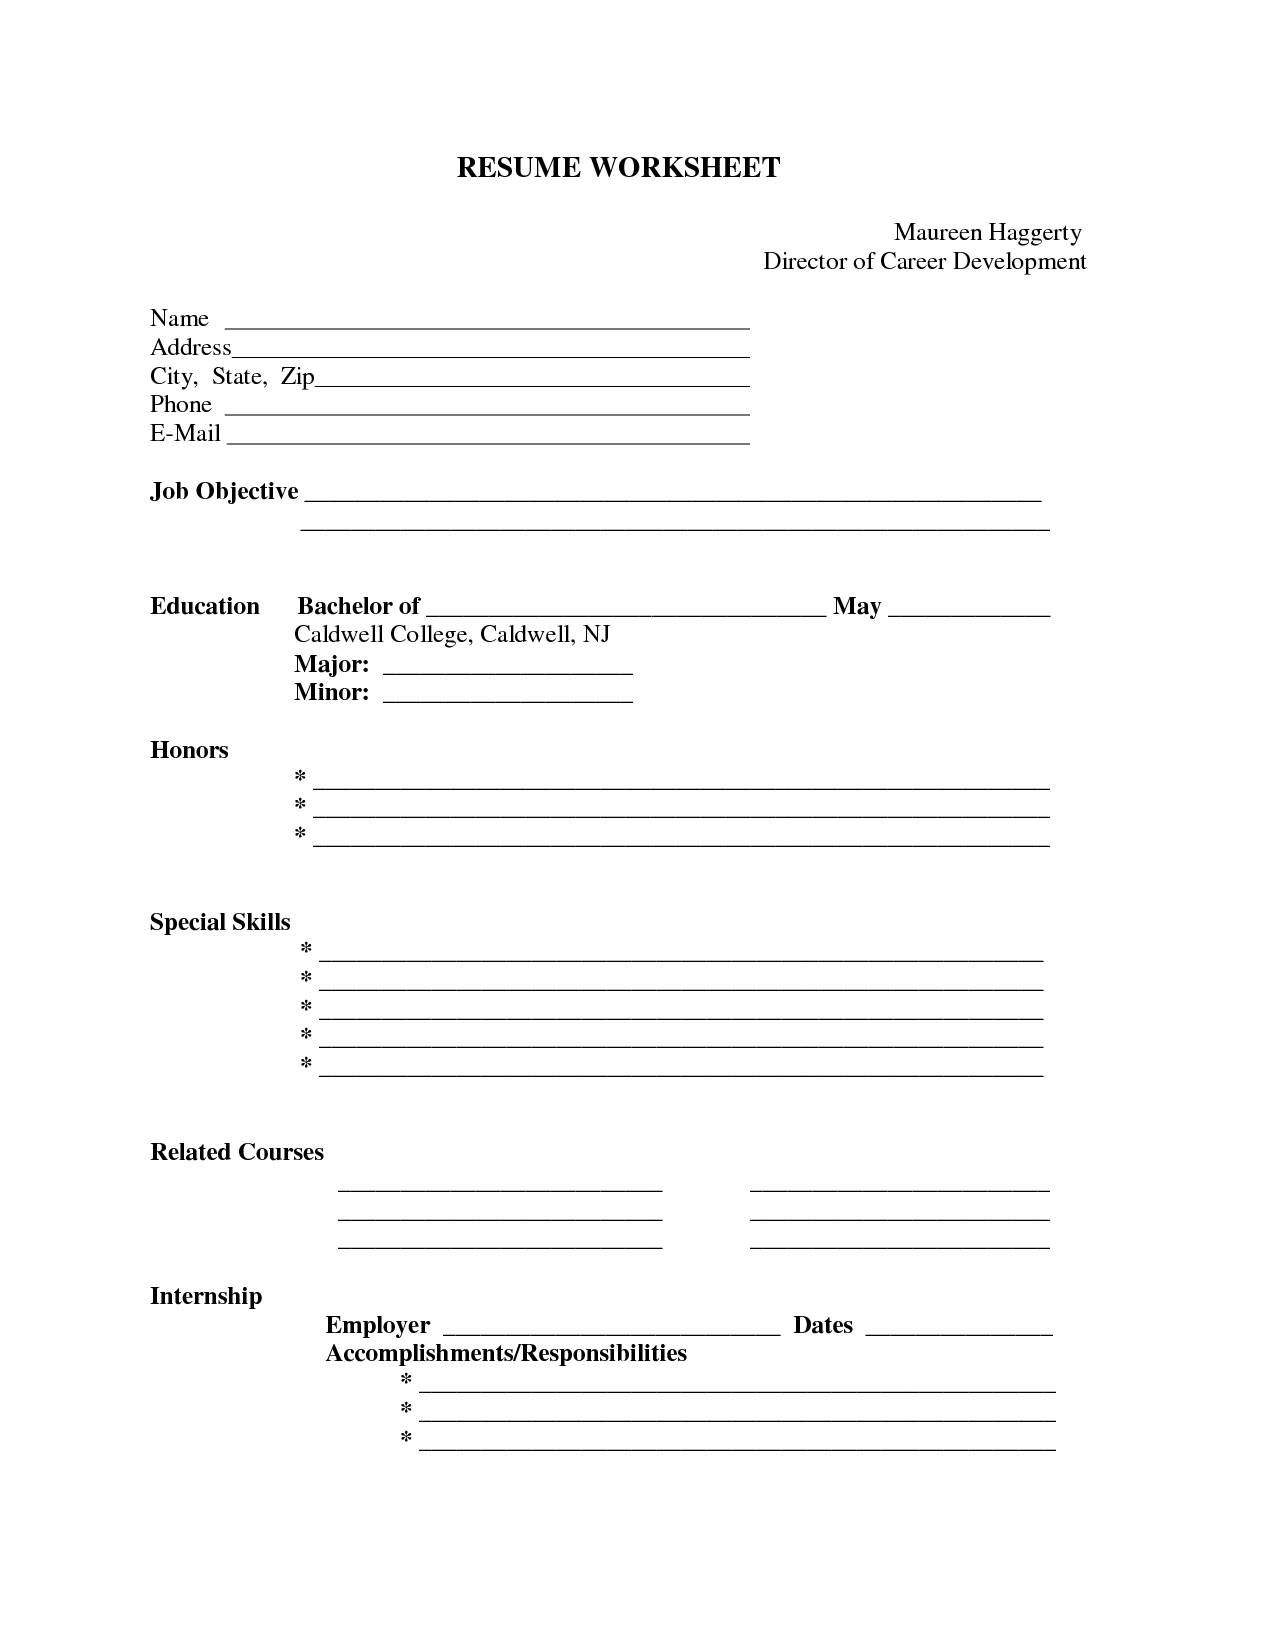 free resume builder for high school students templates and print online maker template student blank ideas example